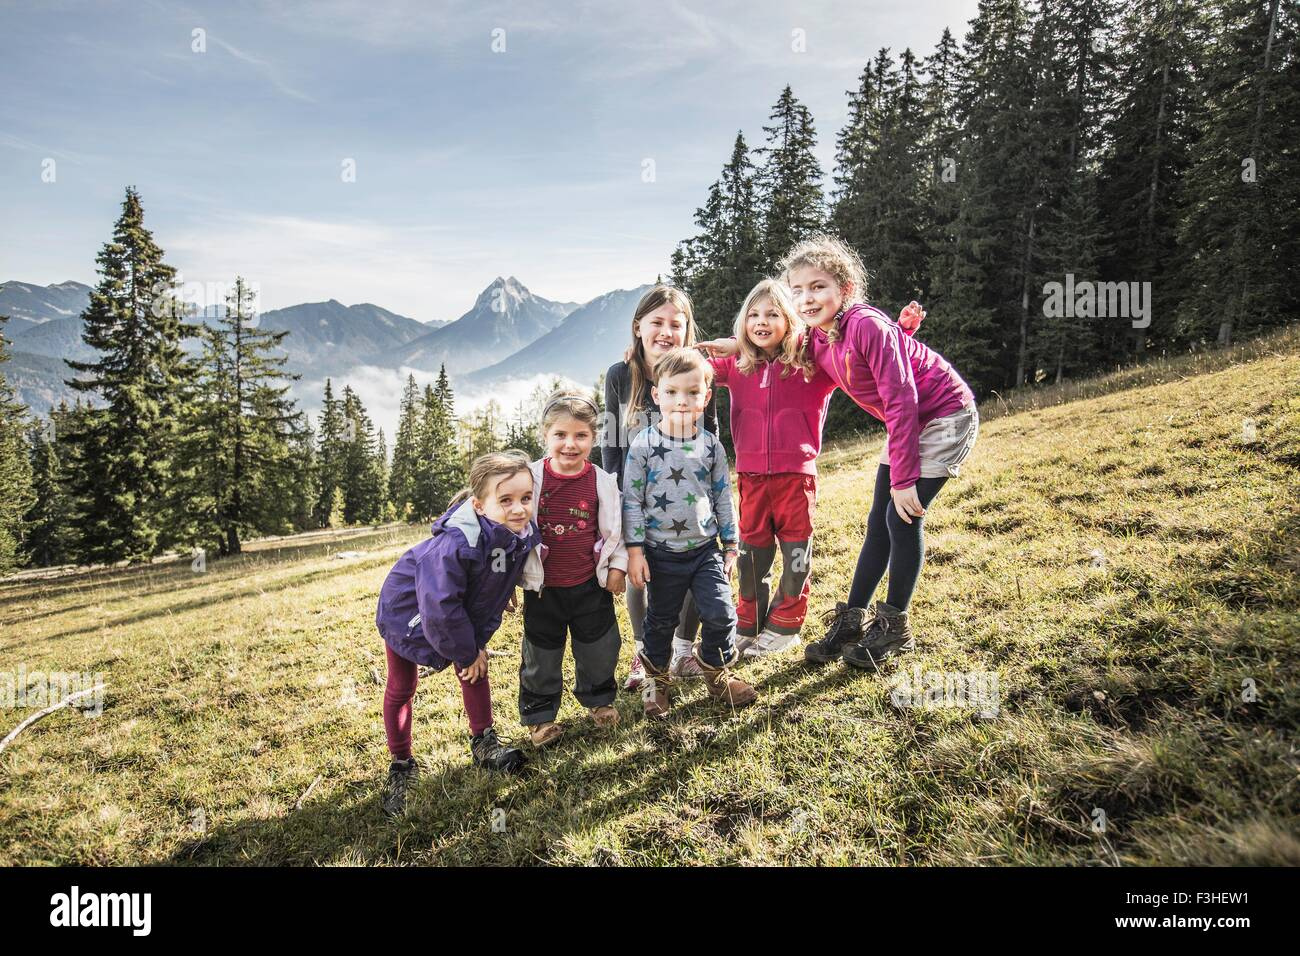 Portrait of two women and four children in field, Achenkirch, Austria - Stock Image